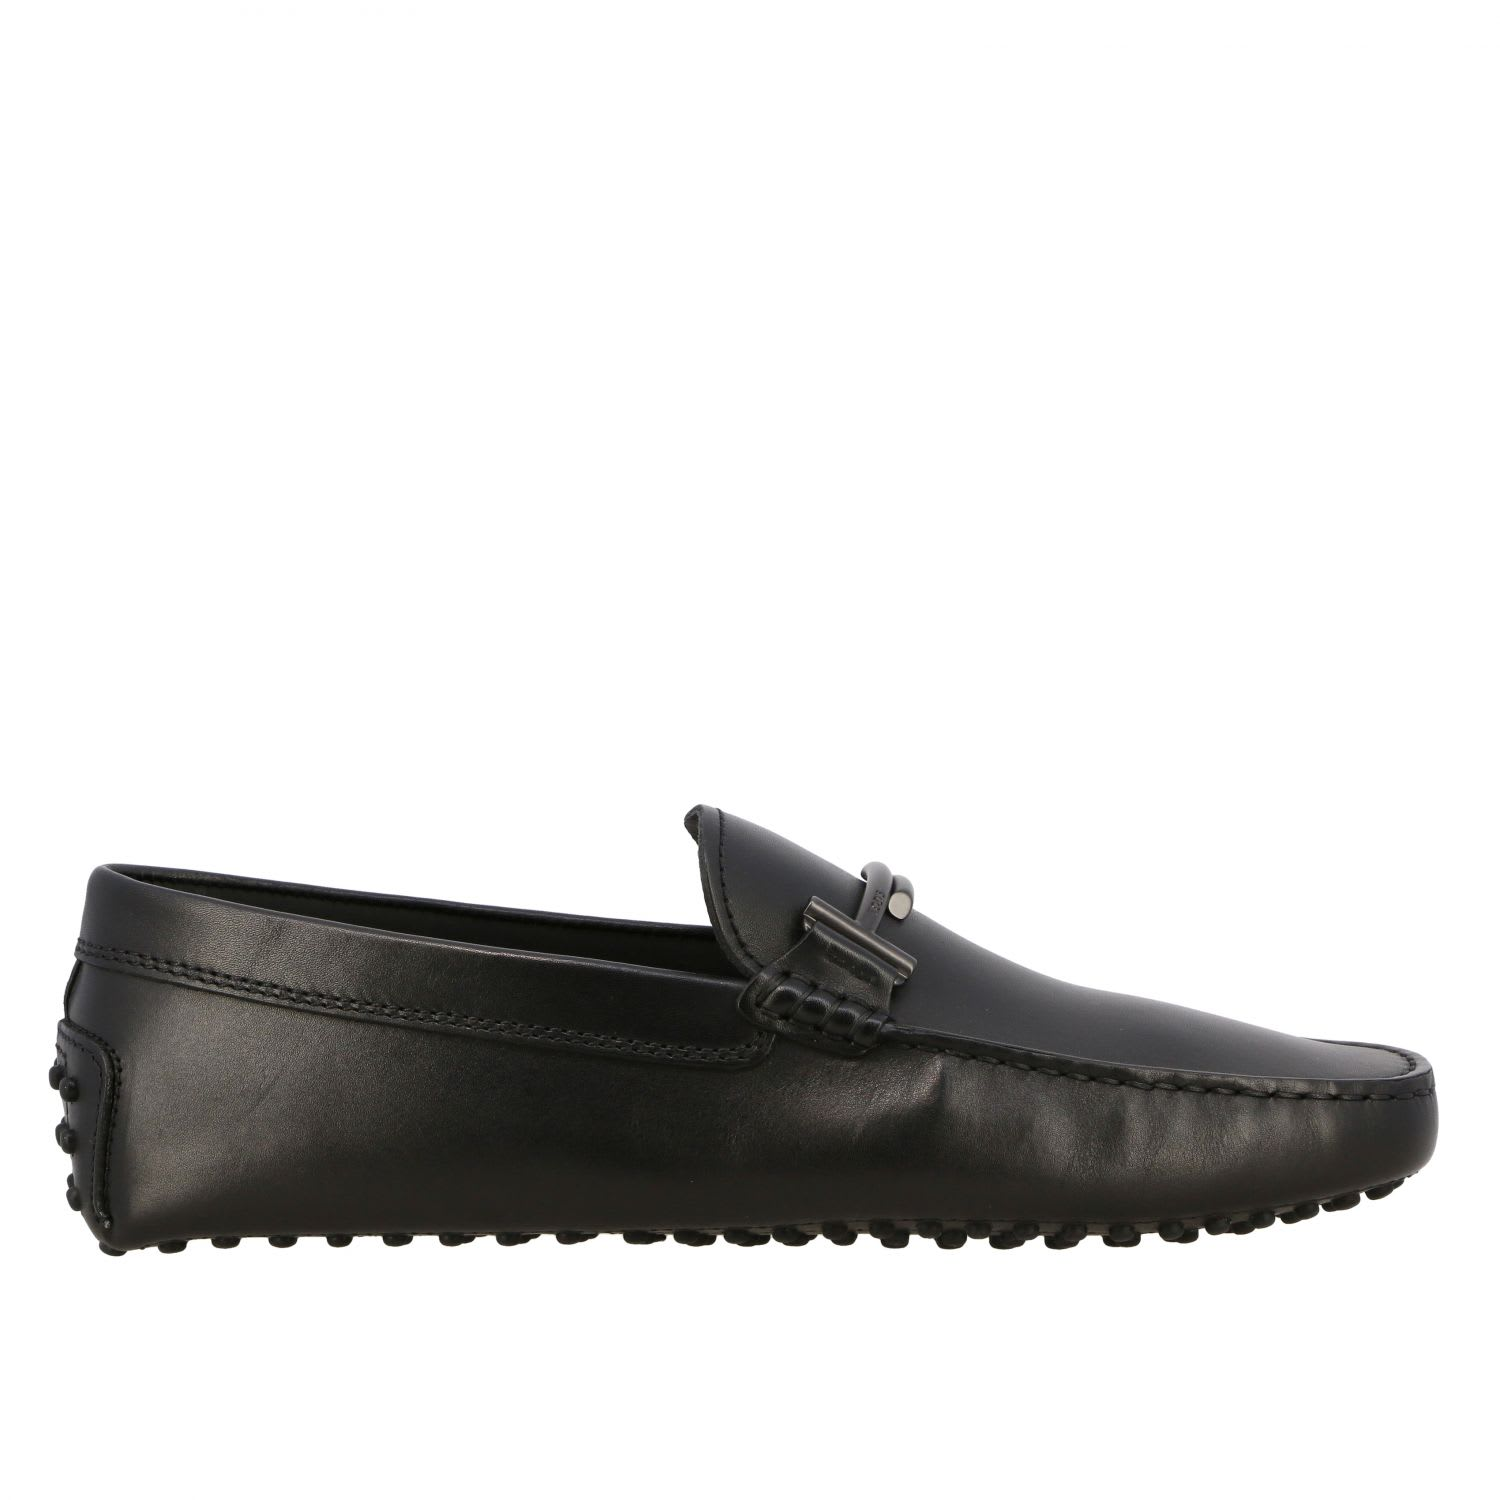 Loafers Tods Gommini Loafers In Leather With Double TComposition: 100% Calfskin